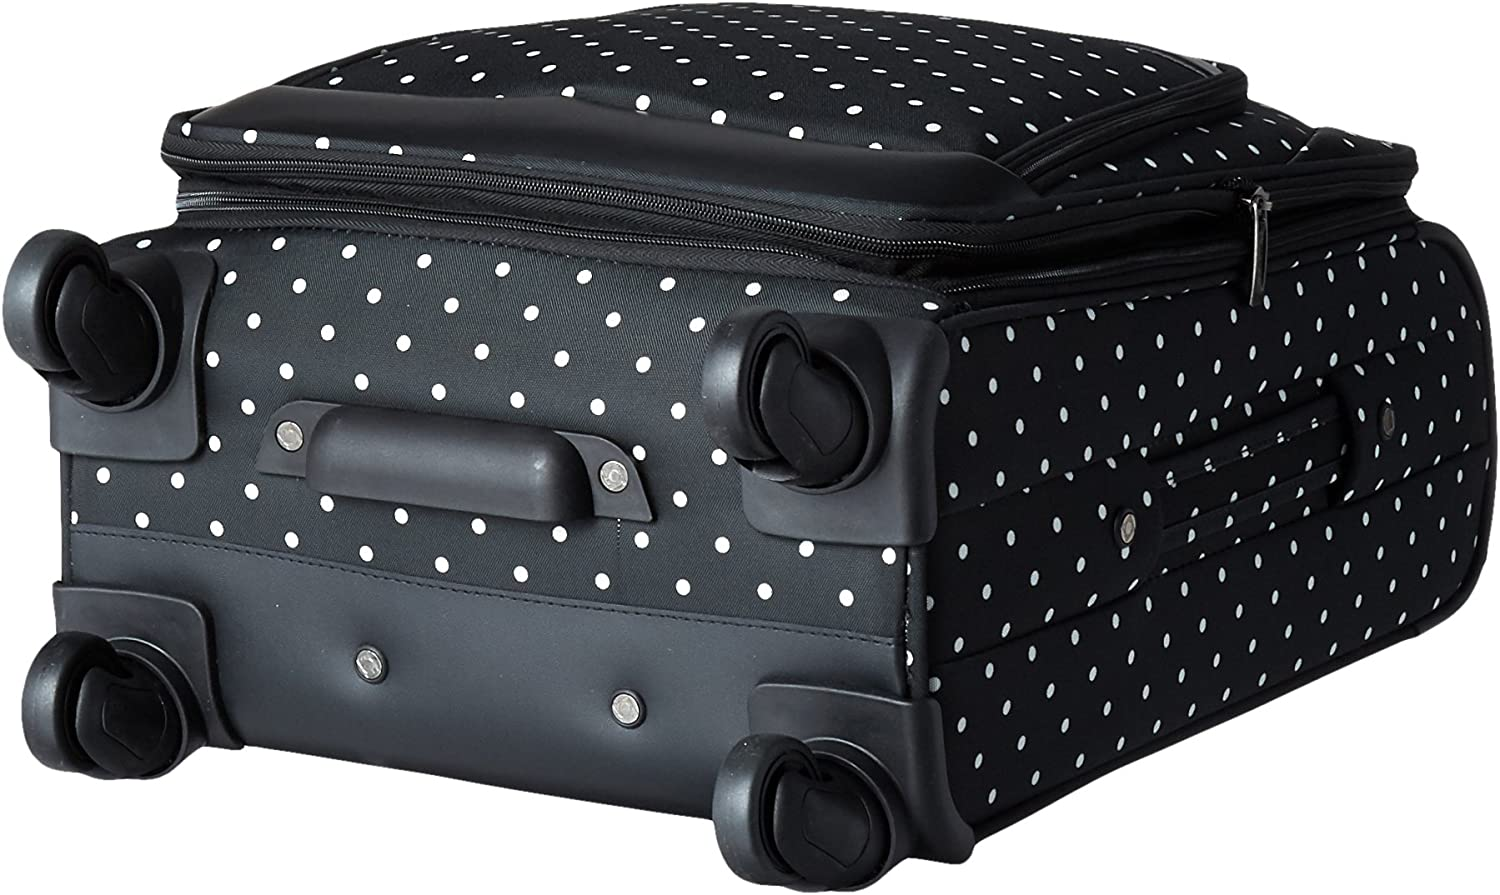 Kenneth Cole Reaction Dot Matrix 20 Lightweight Expandable 4-Wheel Spinner Carry-On Luggage Black